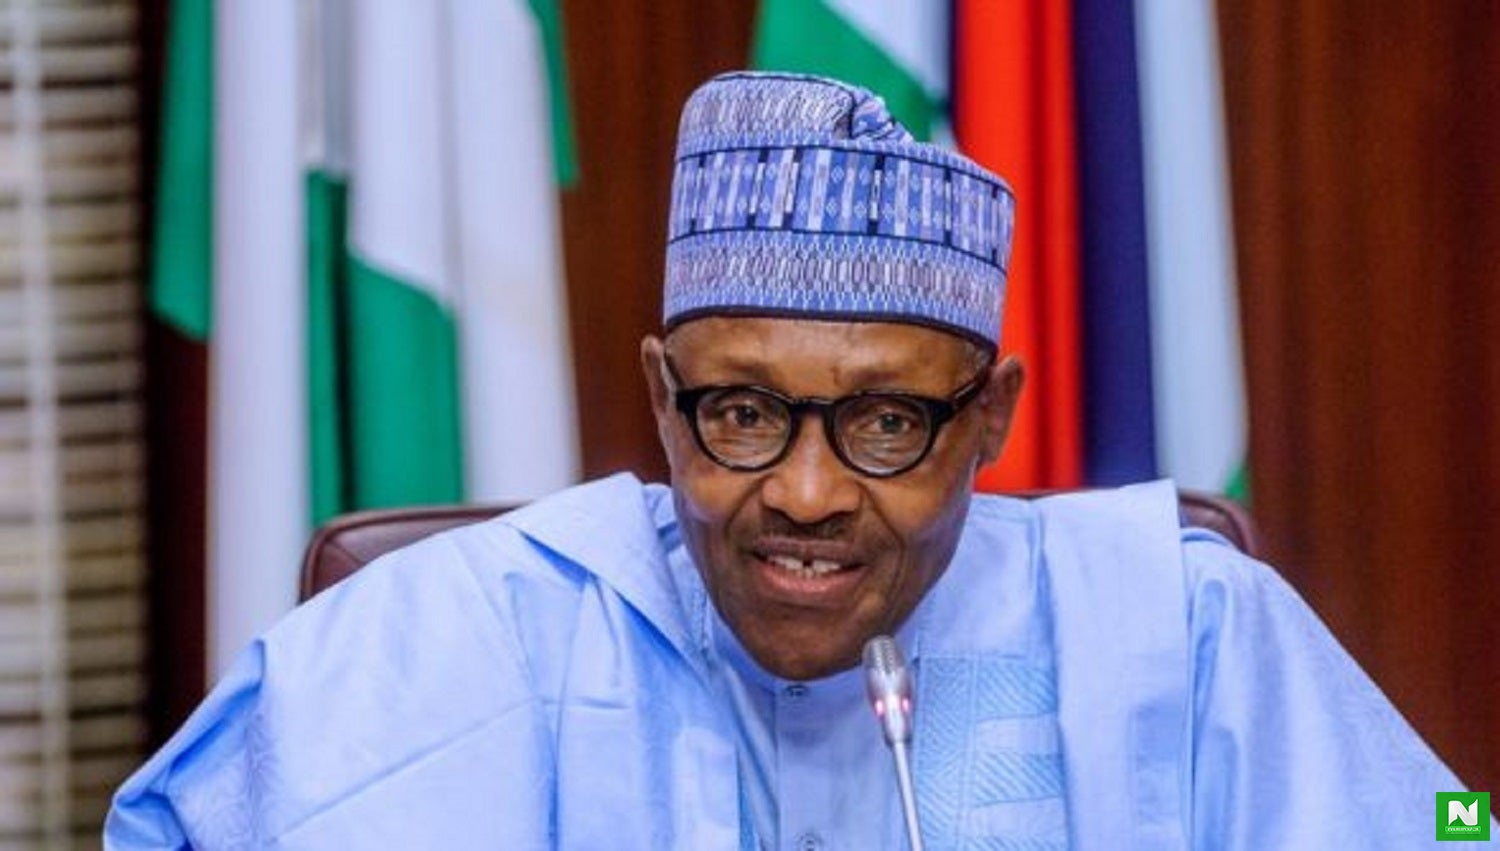 ENDSARS:Discontinue Protest And Let's Dialogue – Buhari To Protestors